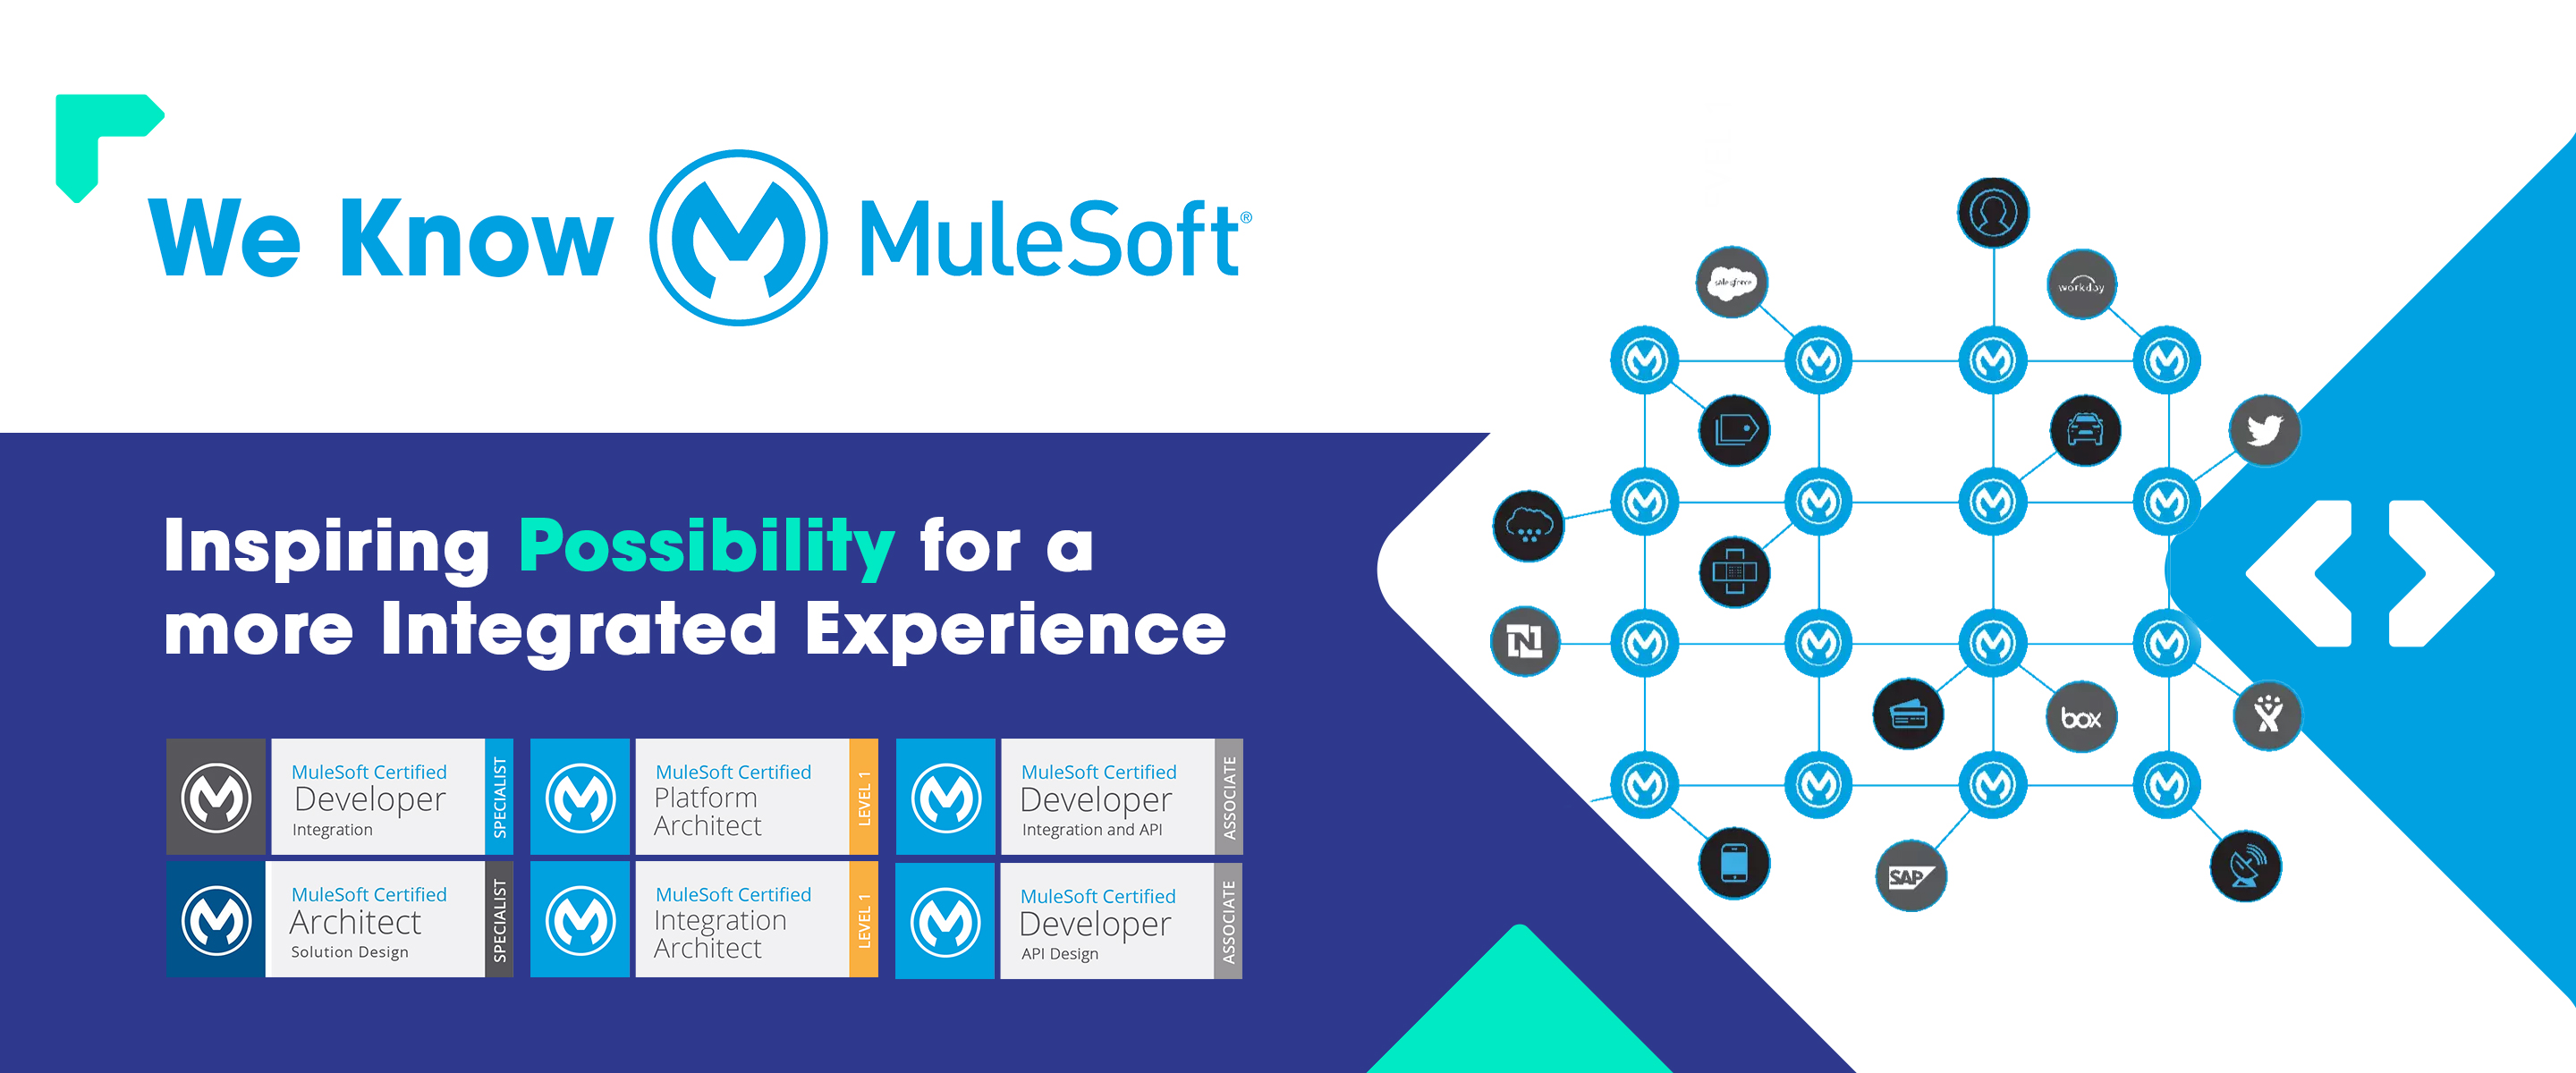 MuleSoft Continuous Delivery, MuleSoft Continuous Integration